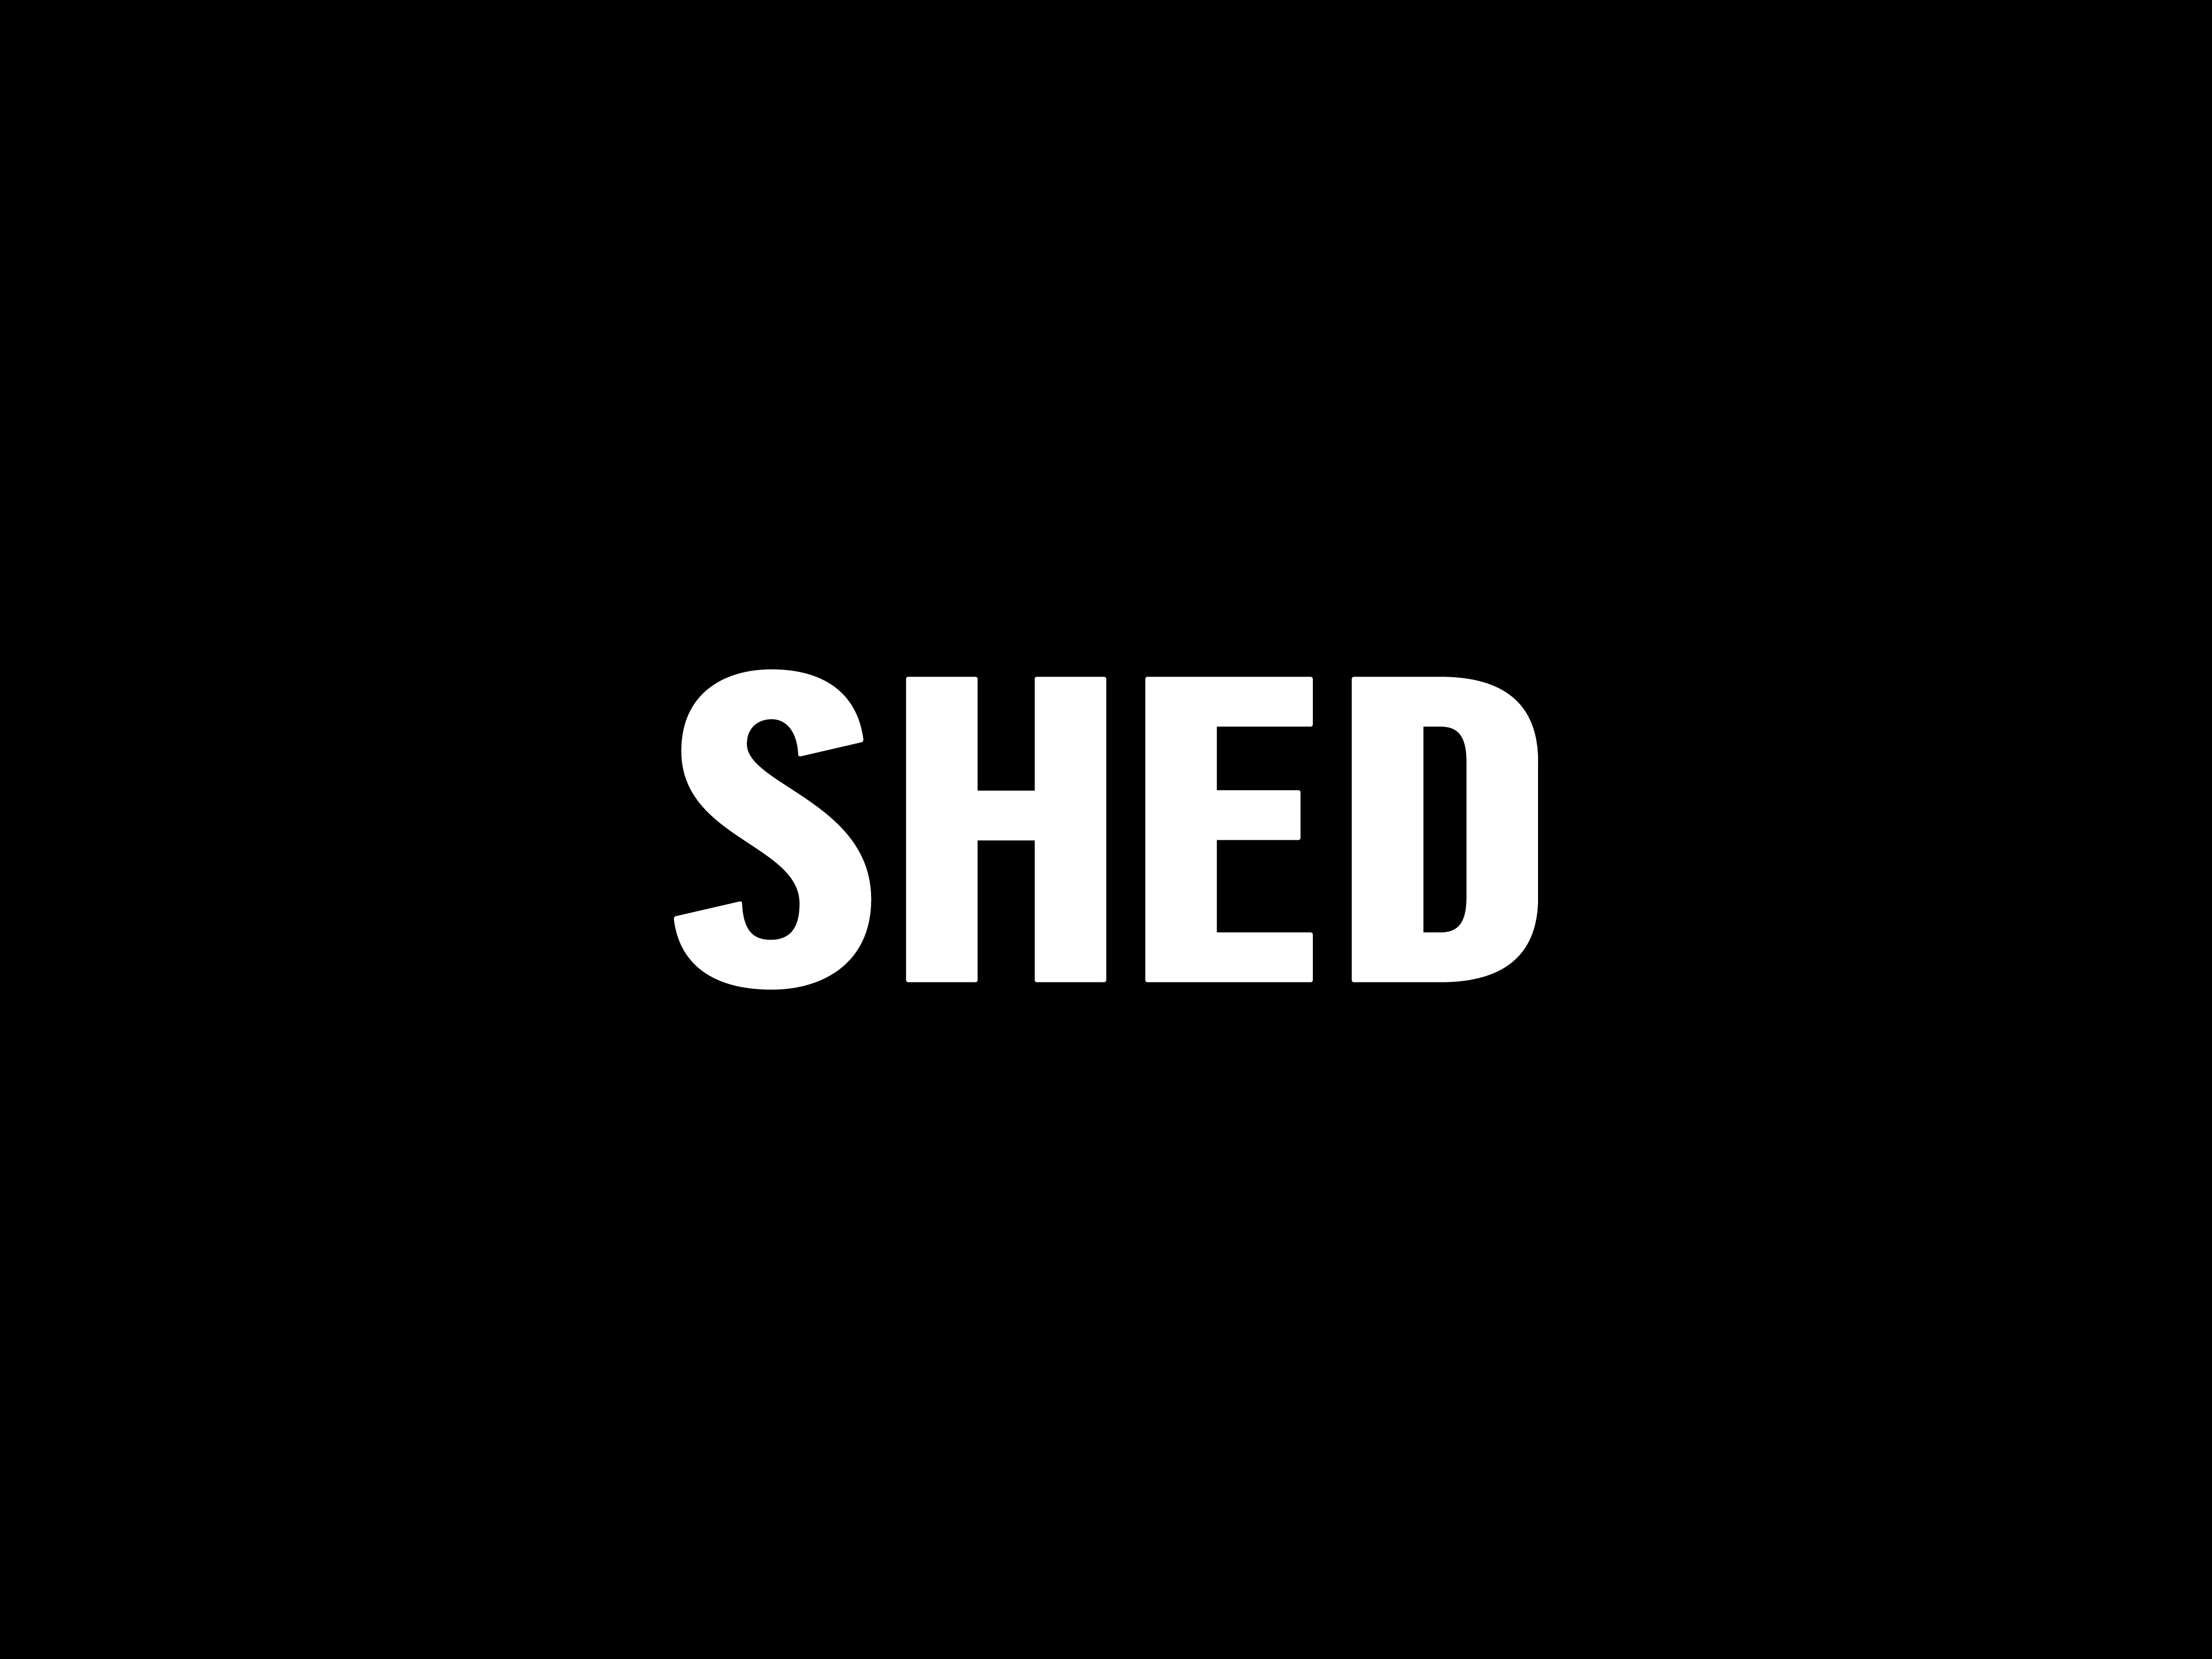 shed@2x